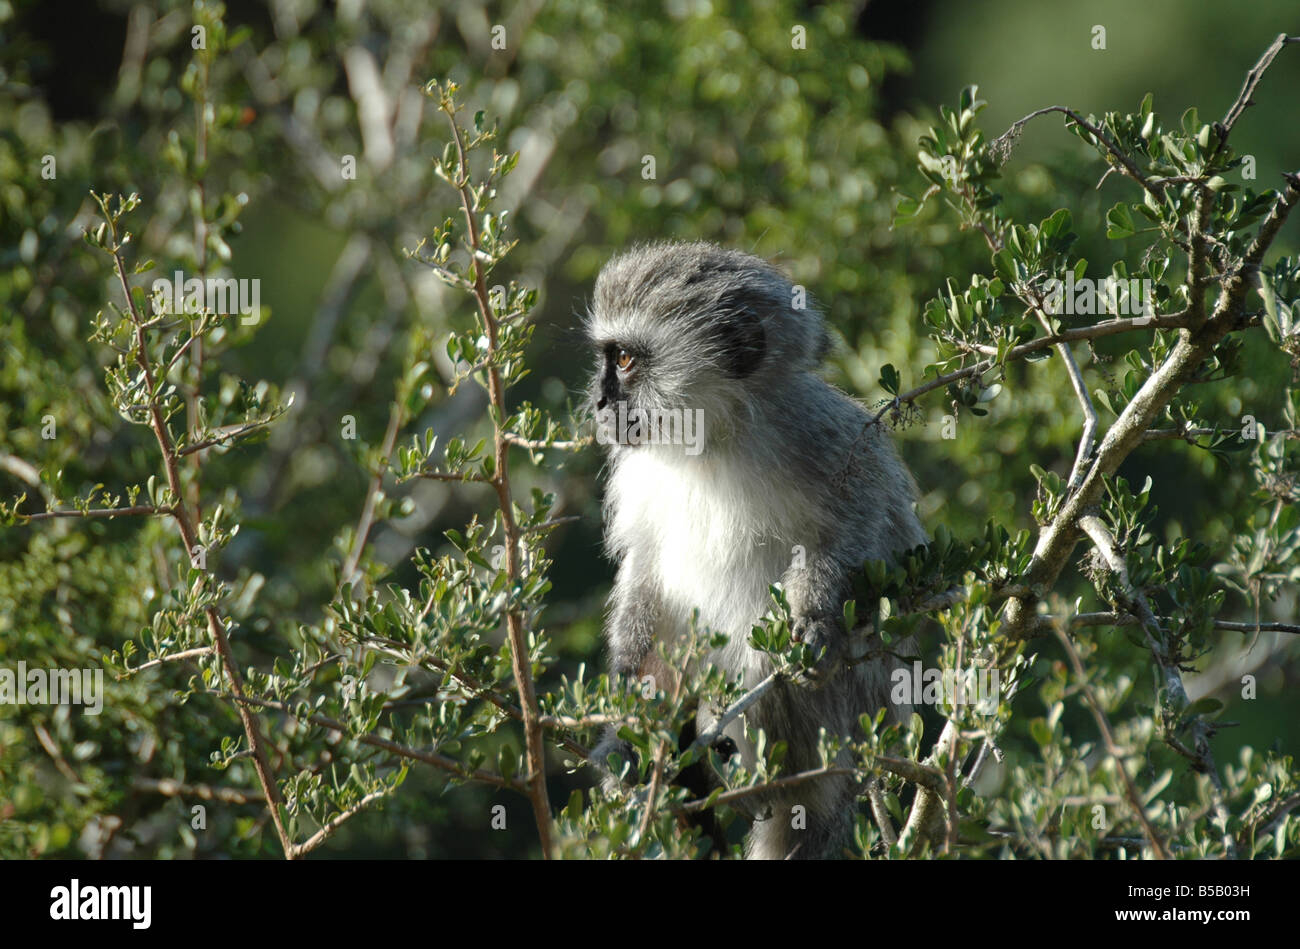 Small monkey in its natural habitat - Stock Image